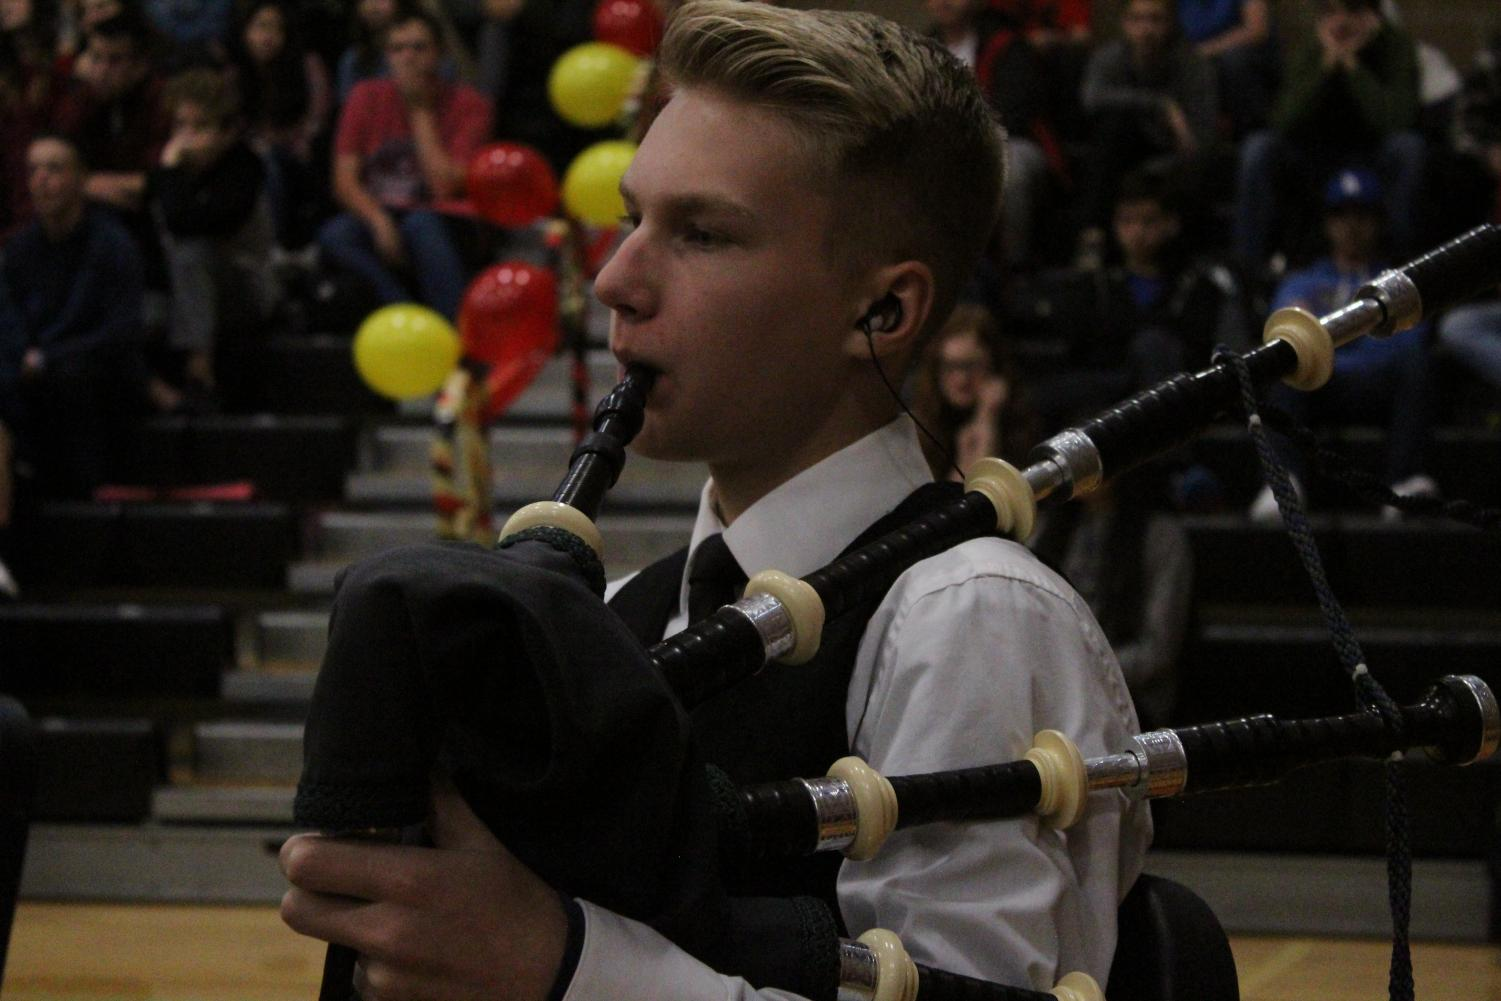 Ashton+Steele+was+able+to+play+the+bagpipes+for+the+whole+school+to+hear.